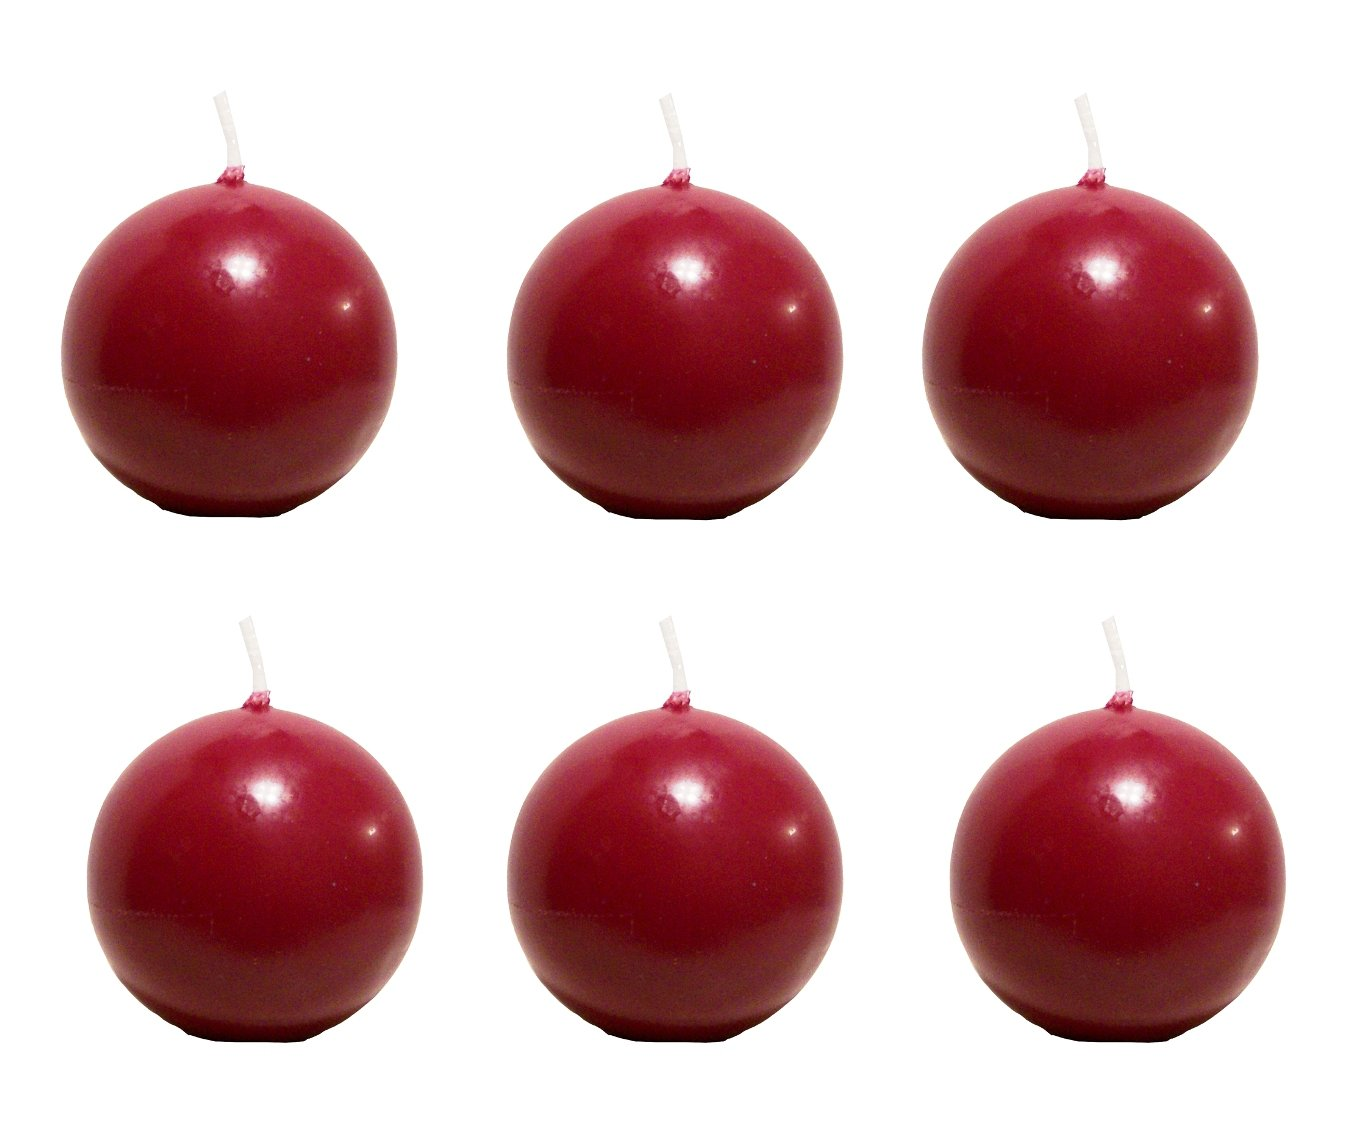 Biedermann & Sons 2-3/4-Inch Round-Shaped Candles, Burgundy, Set of 6 by Biedermann & Sons